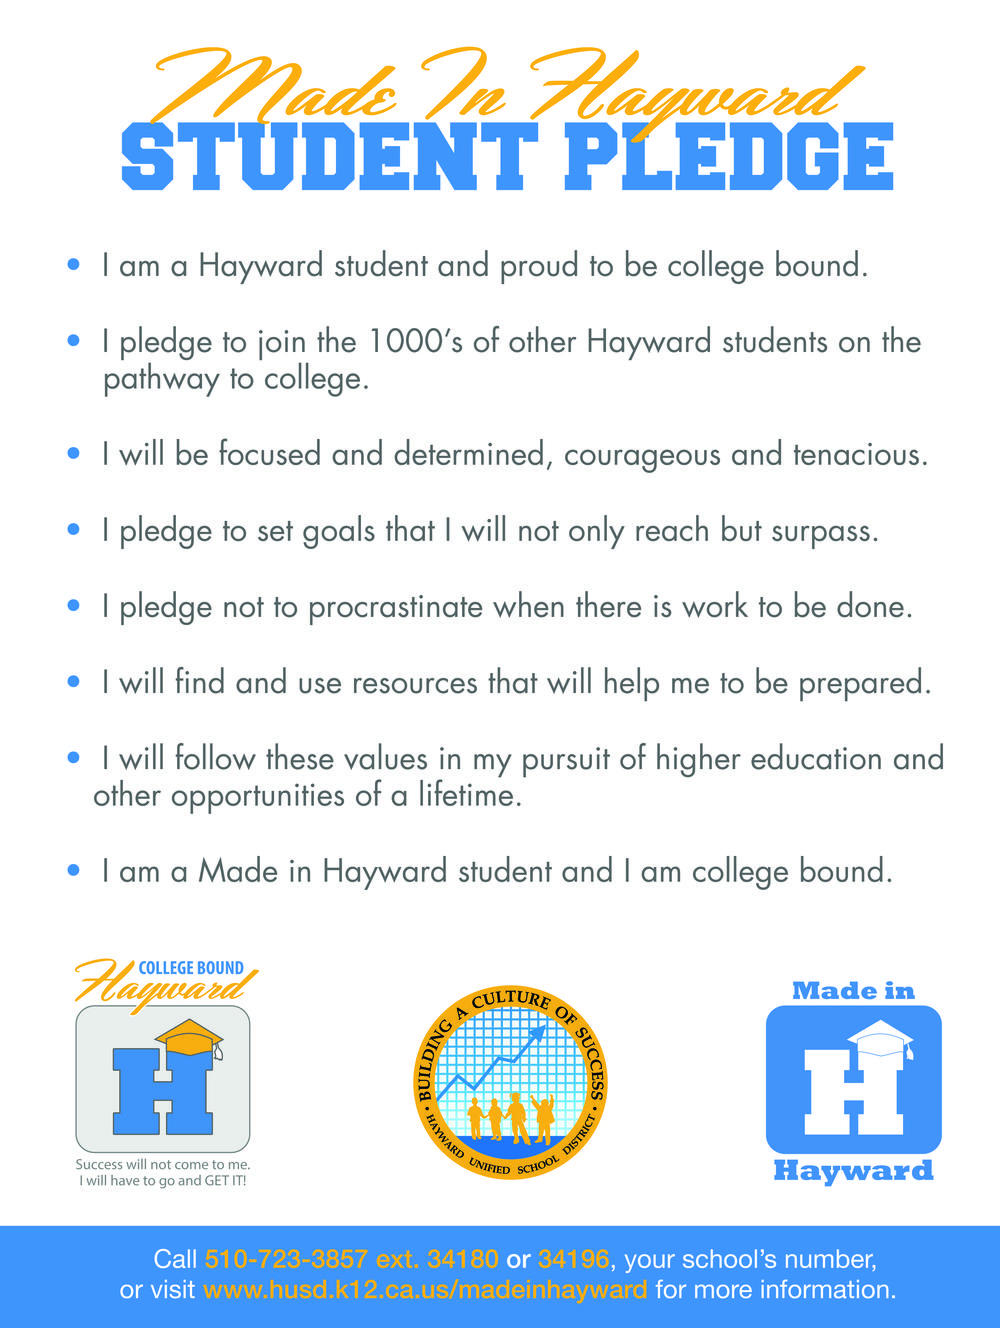 MIH Pledge Posters_24x18_english_final.jpg